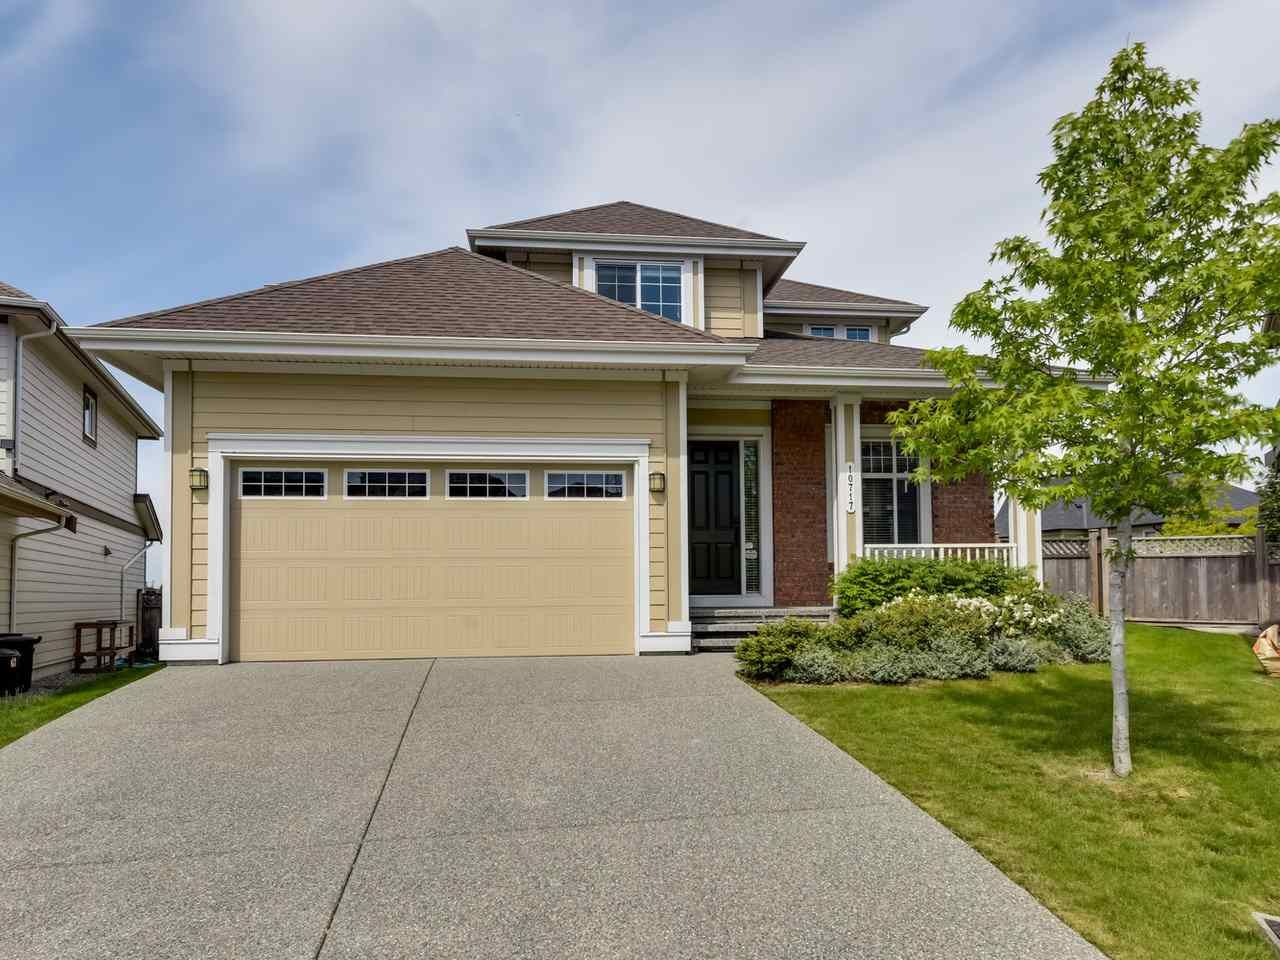 Main Photo: 10717 82 AVENUE in Delta: Nordel House for sale (N. Delta)  : MLS®# R2060978